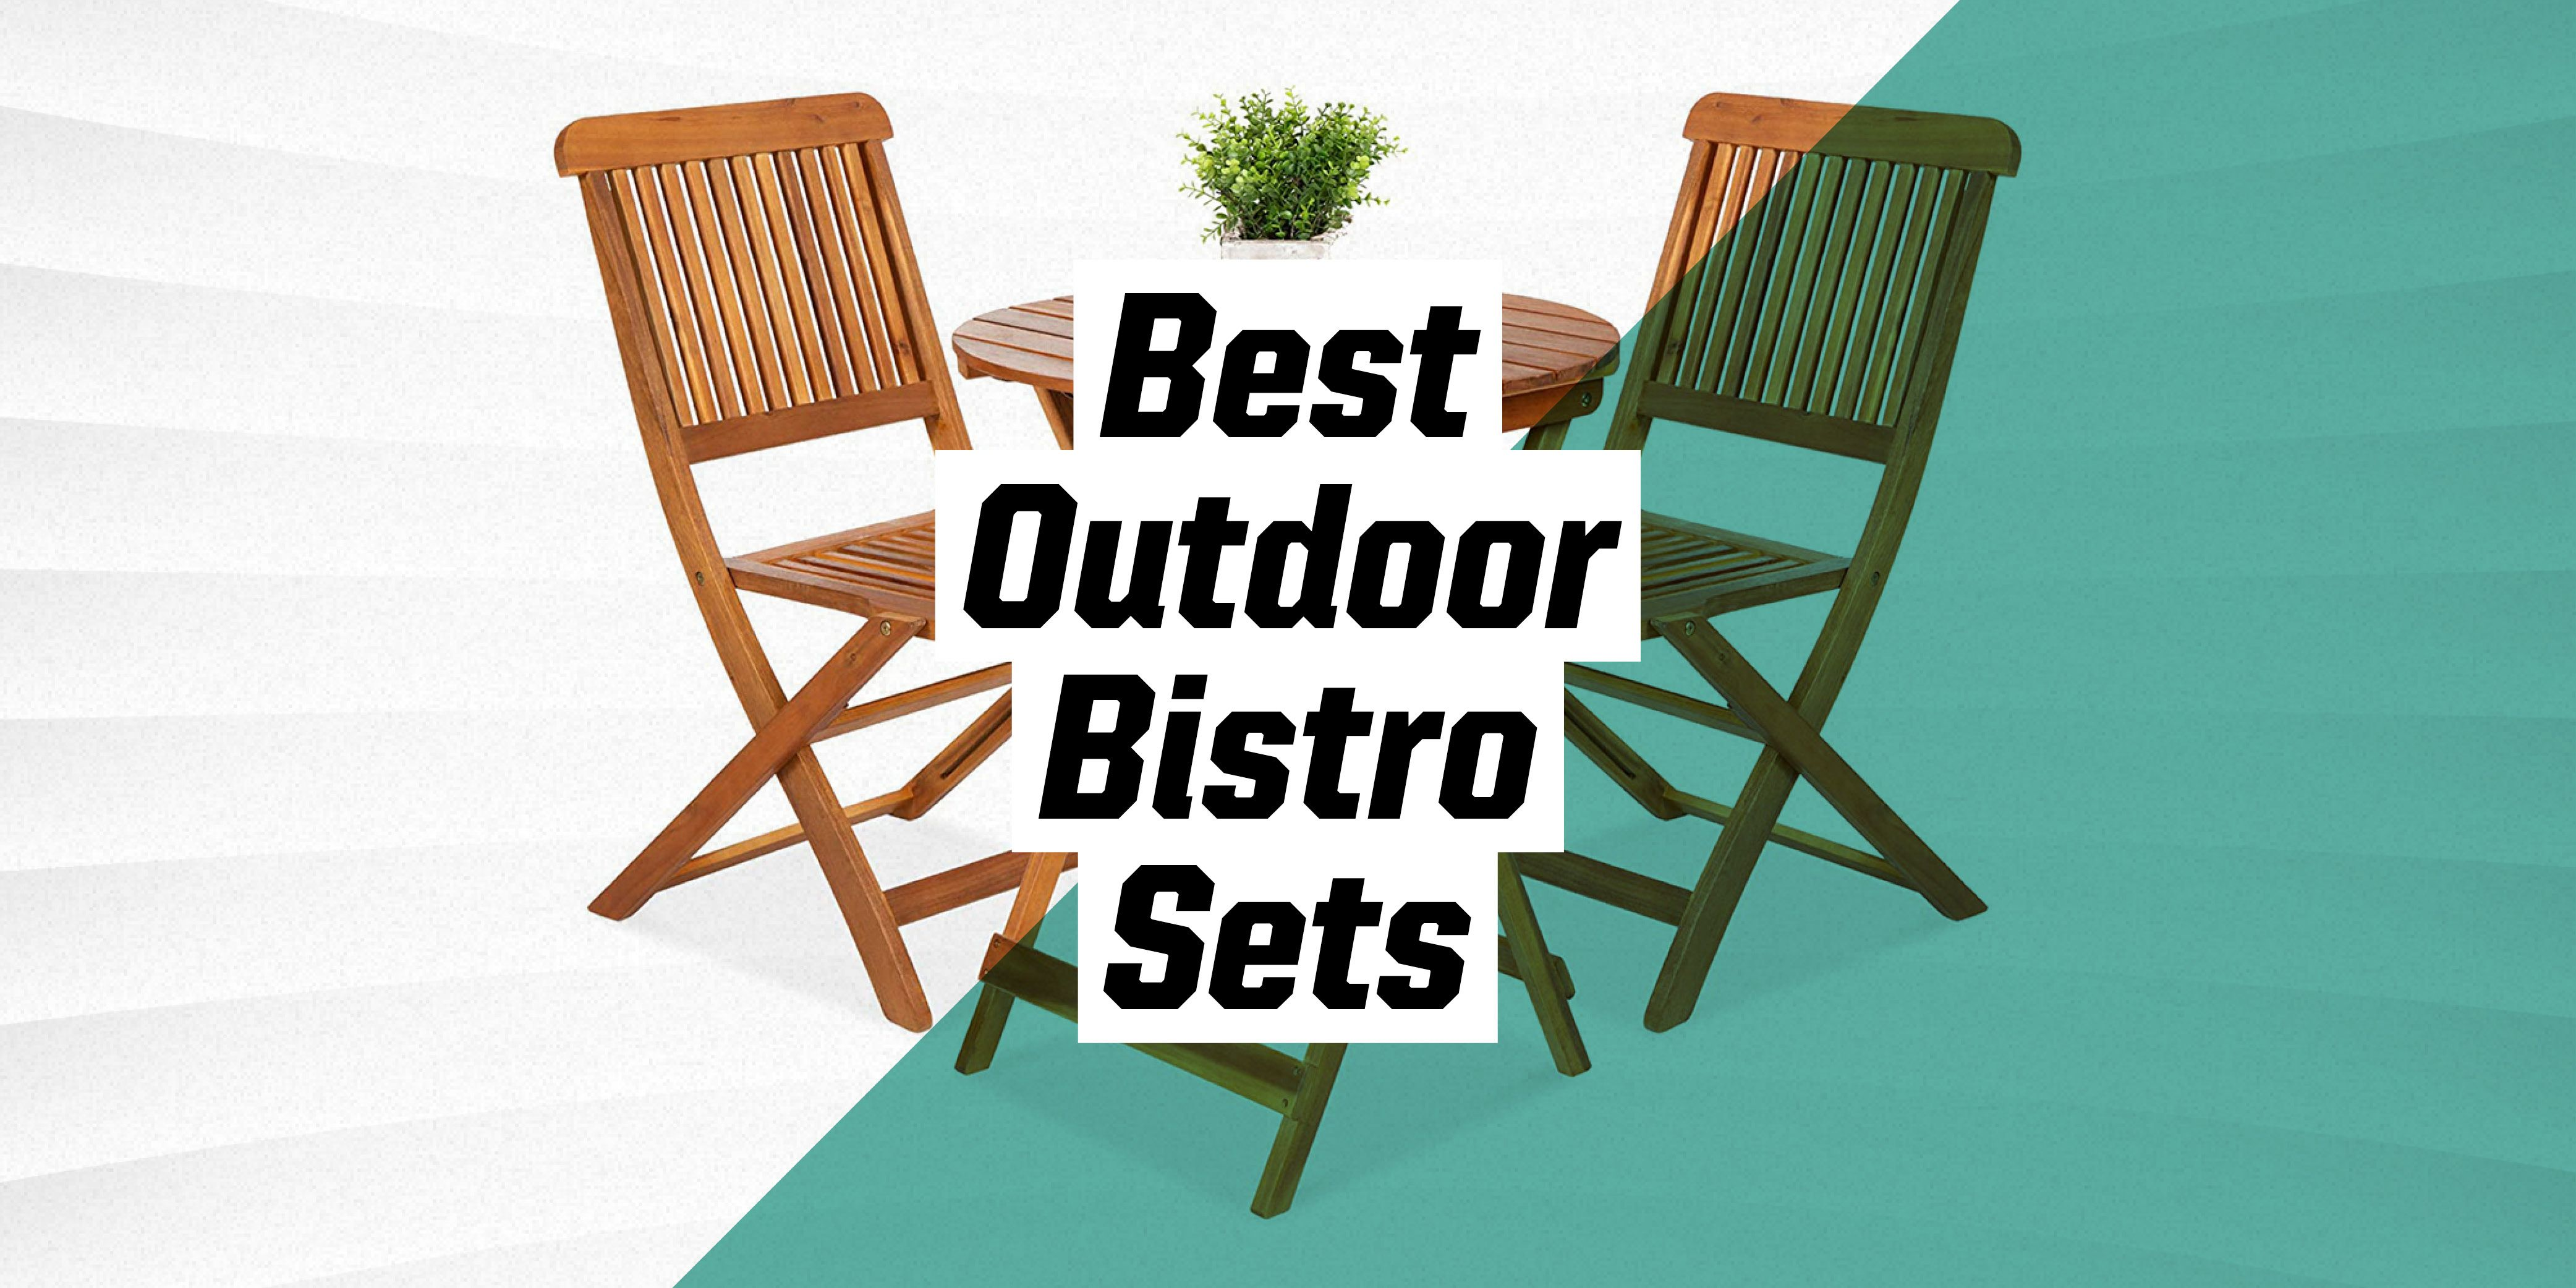 10 beautiful highly rated outdoor bistro sets